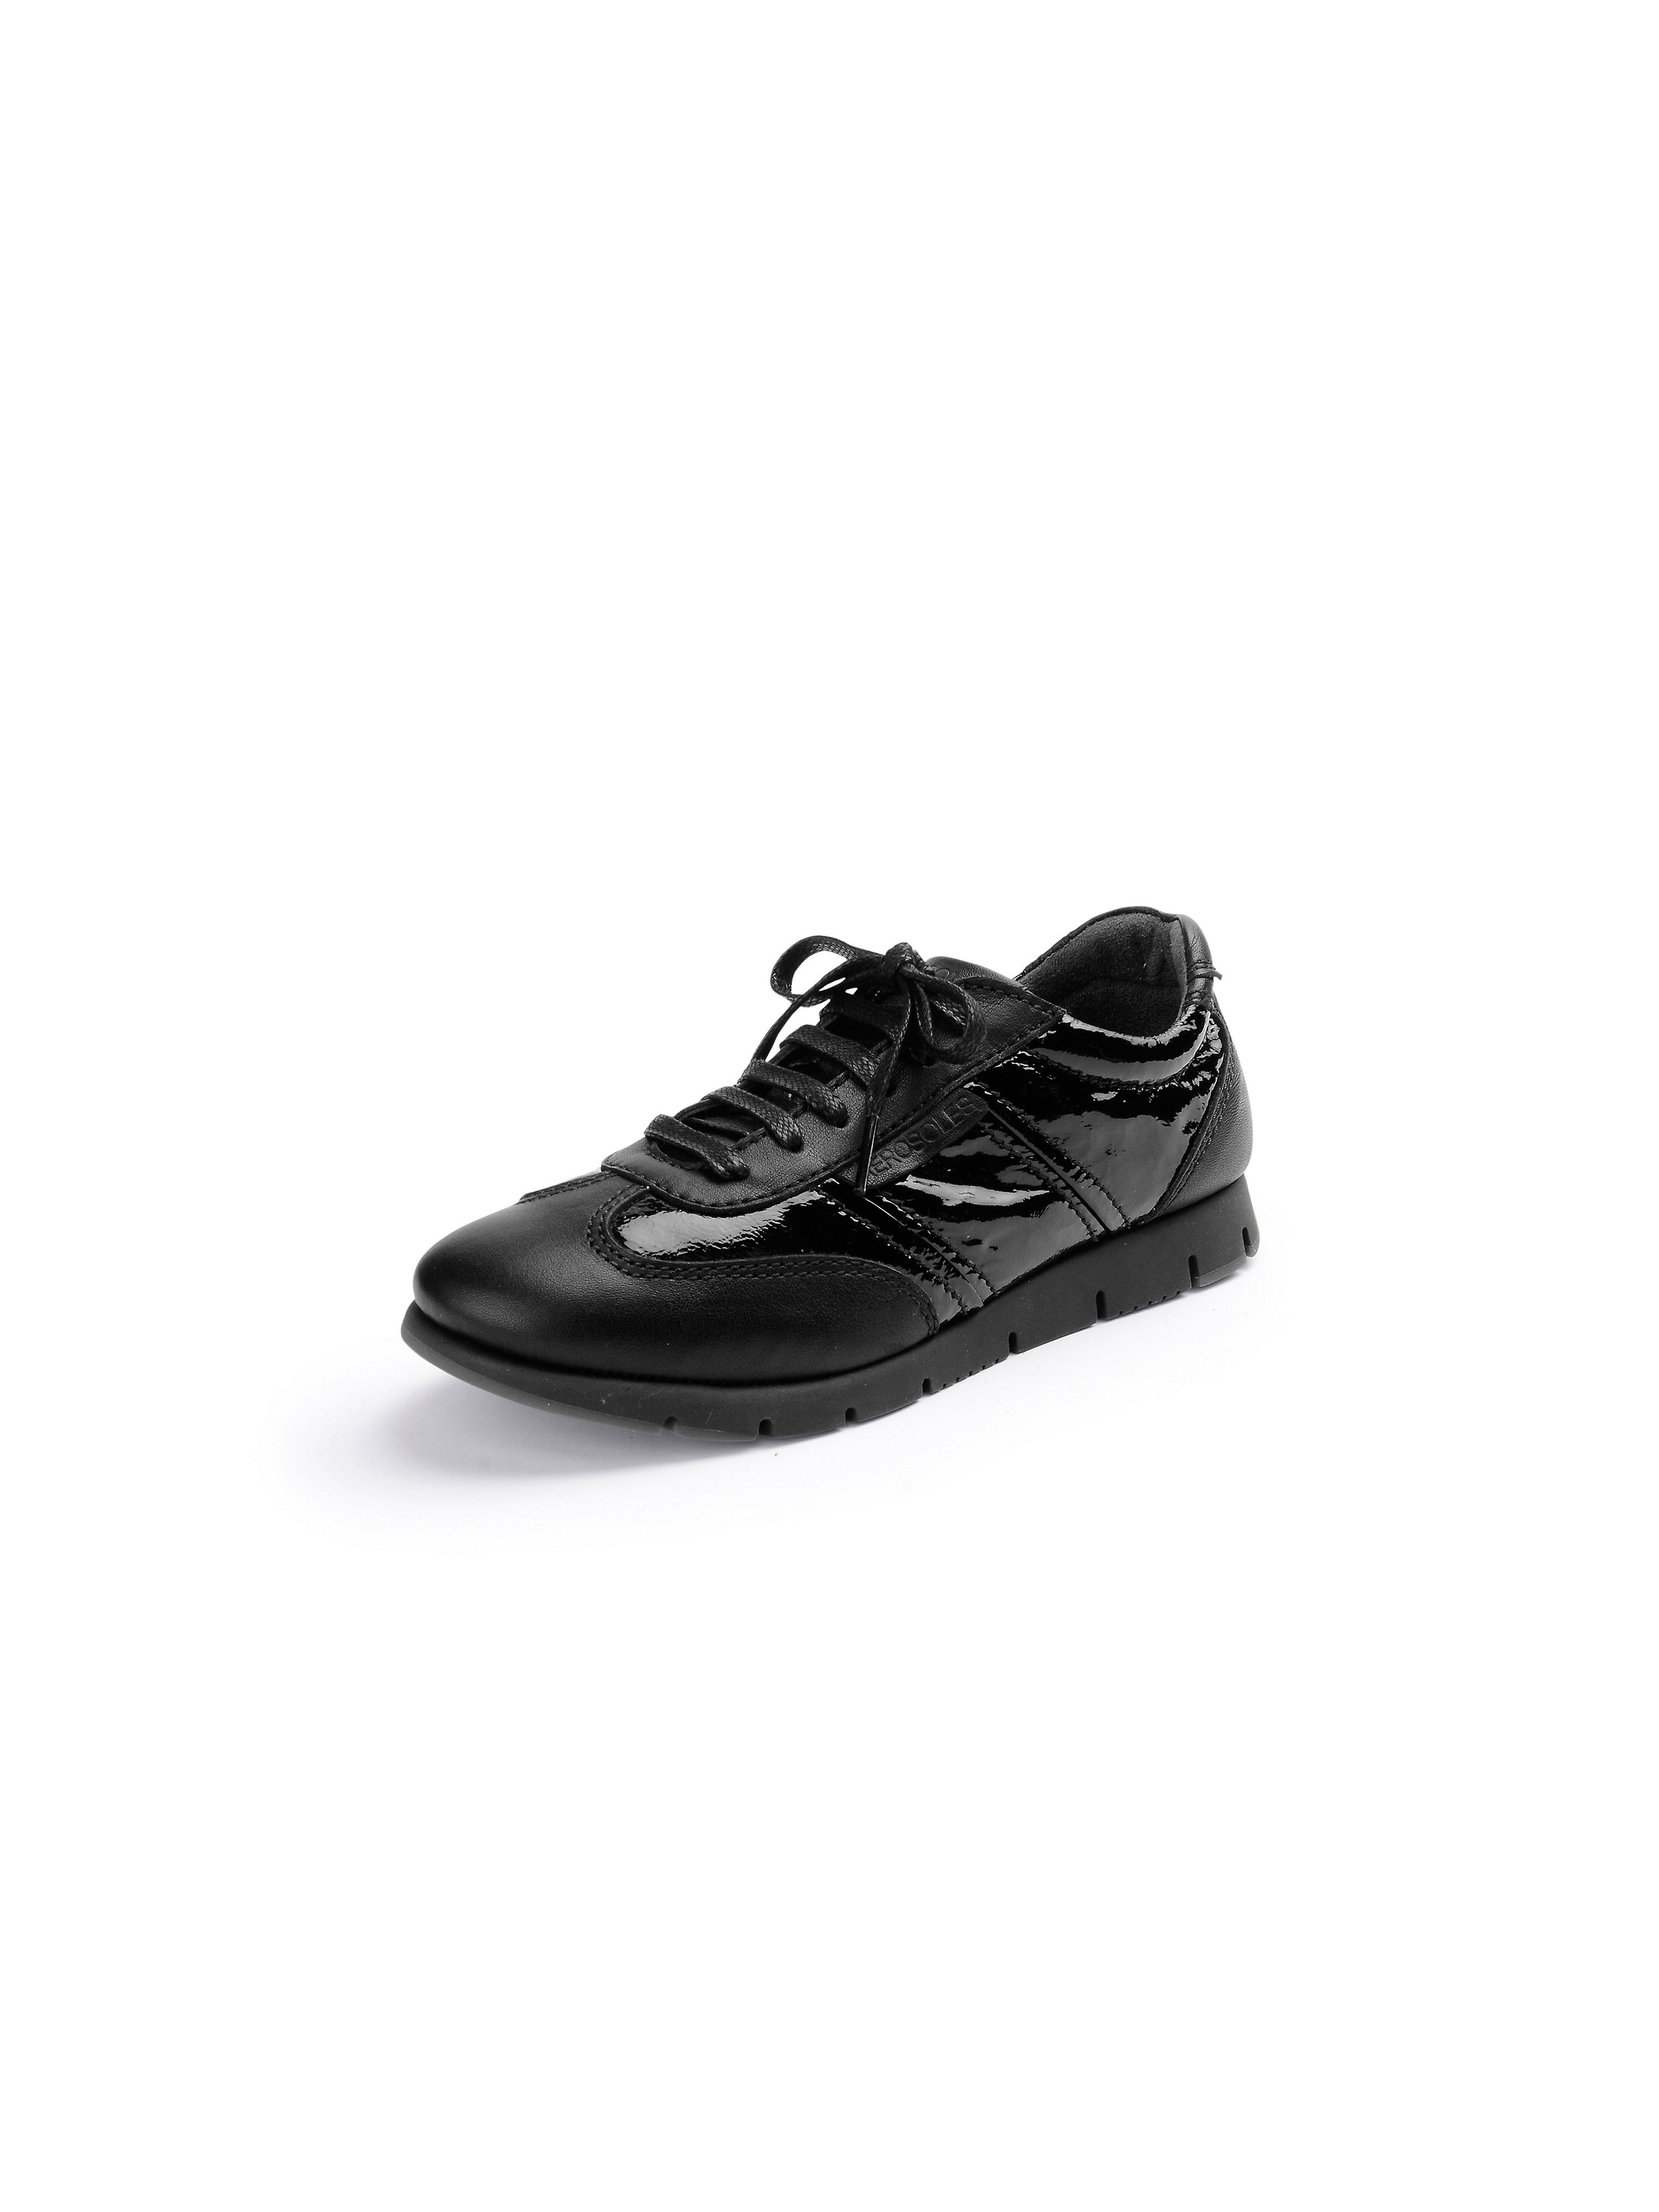 sneakers-from-aerosoles-black